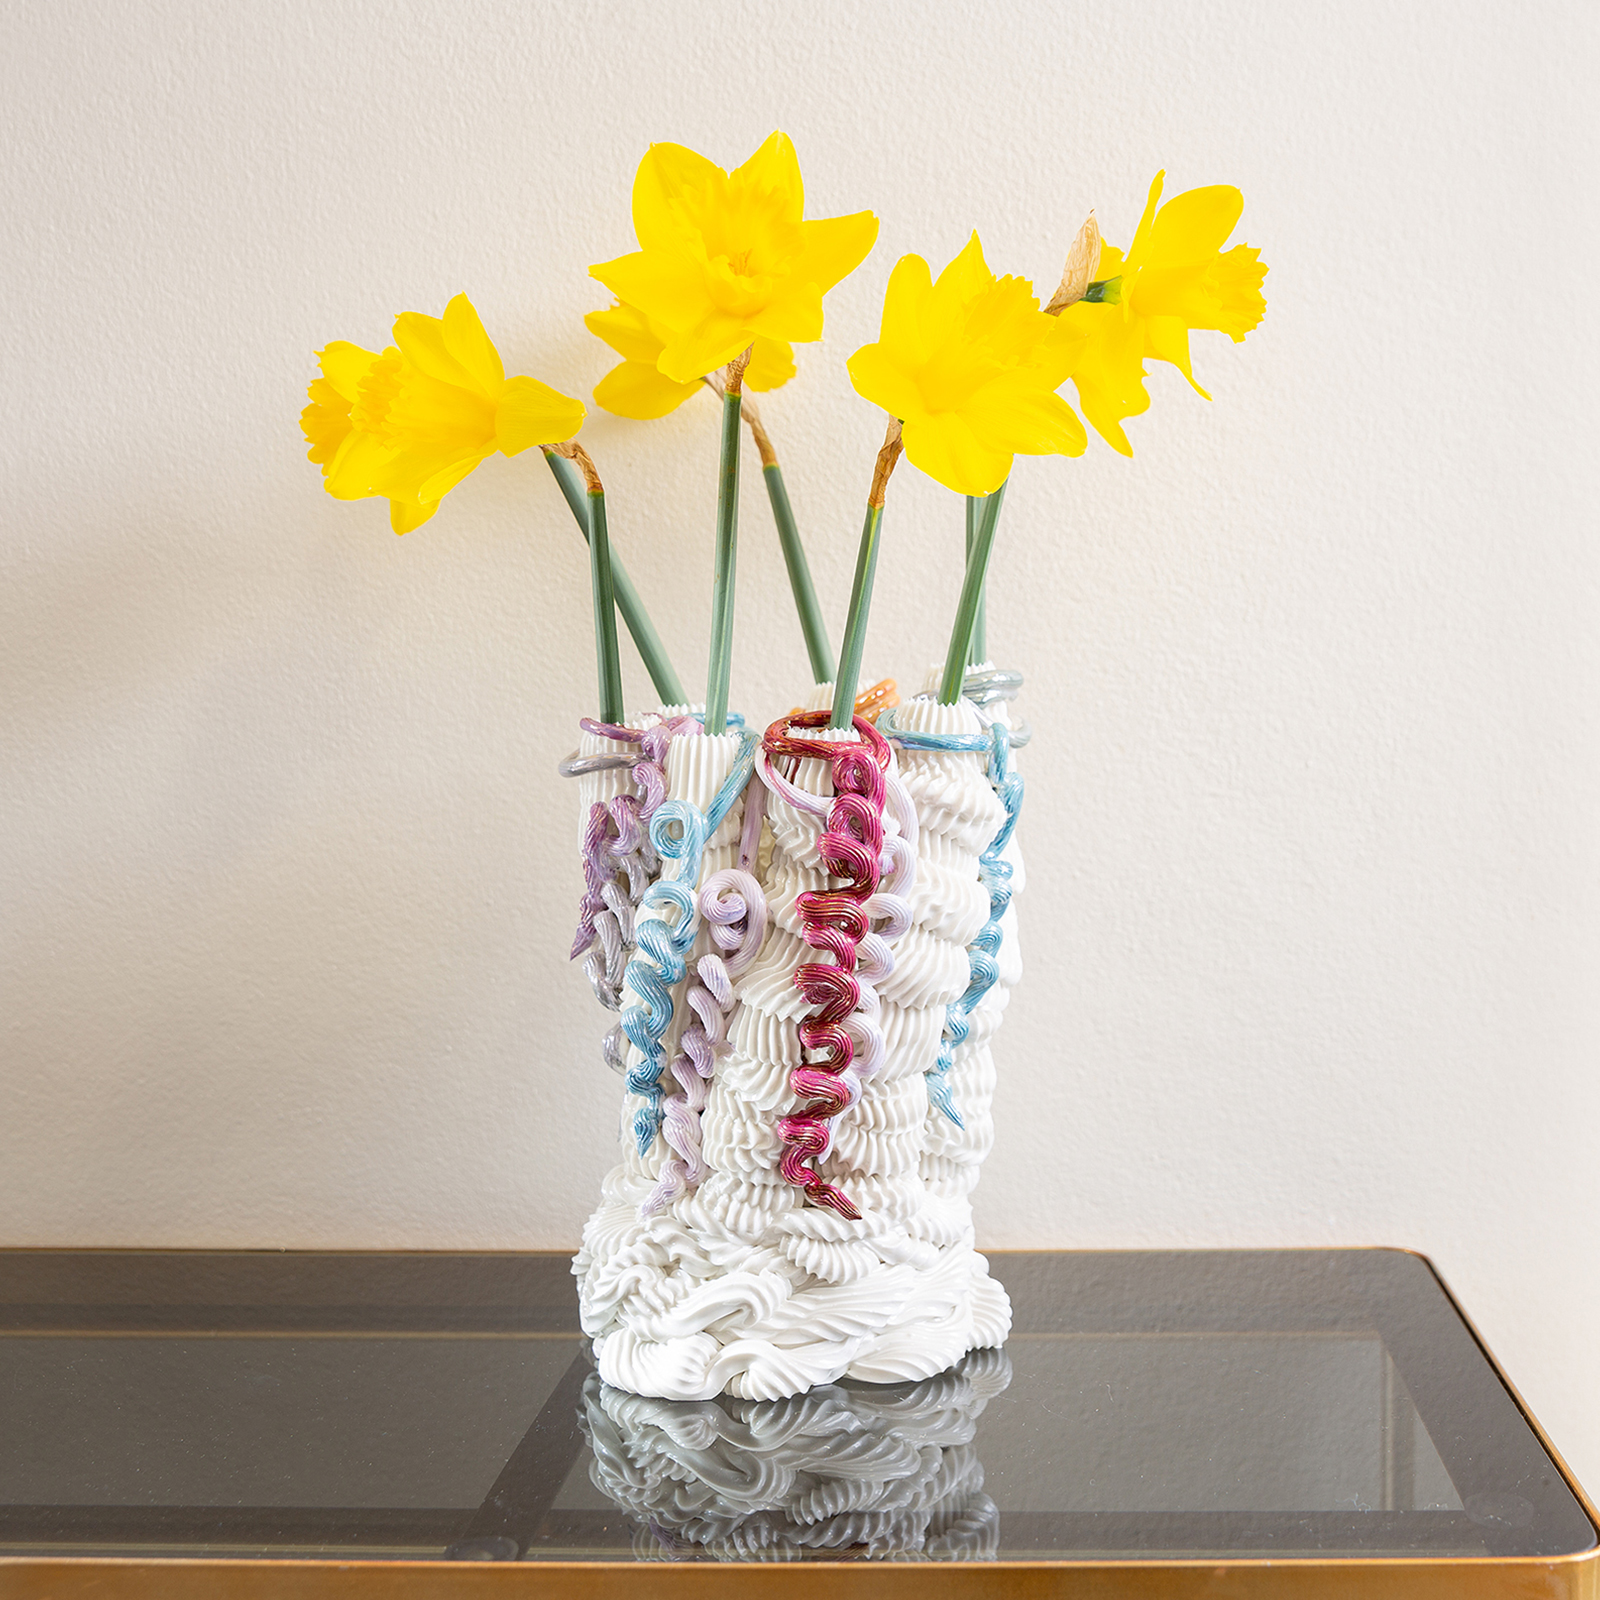 Fuddling Vase With Applied Loopdeloops In Hand Piped Porcelain By Ebony Russell 2